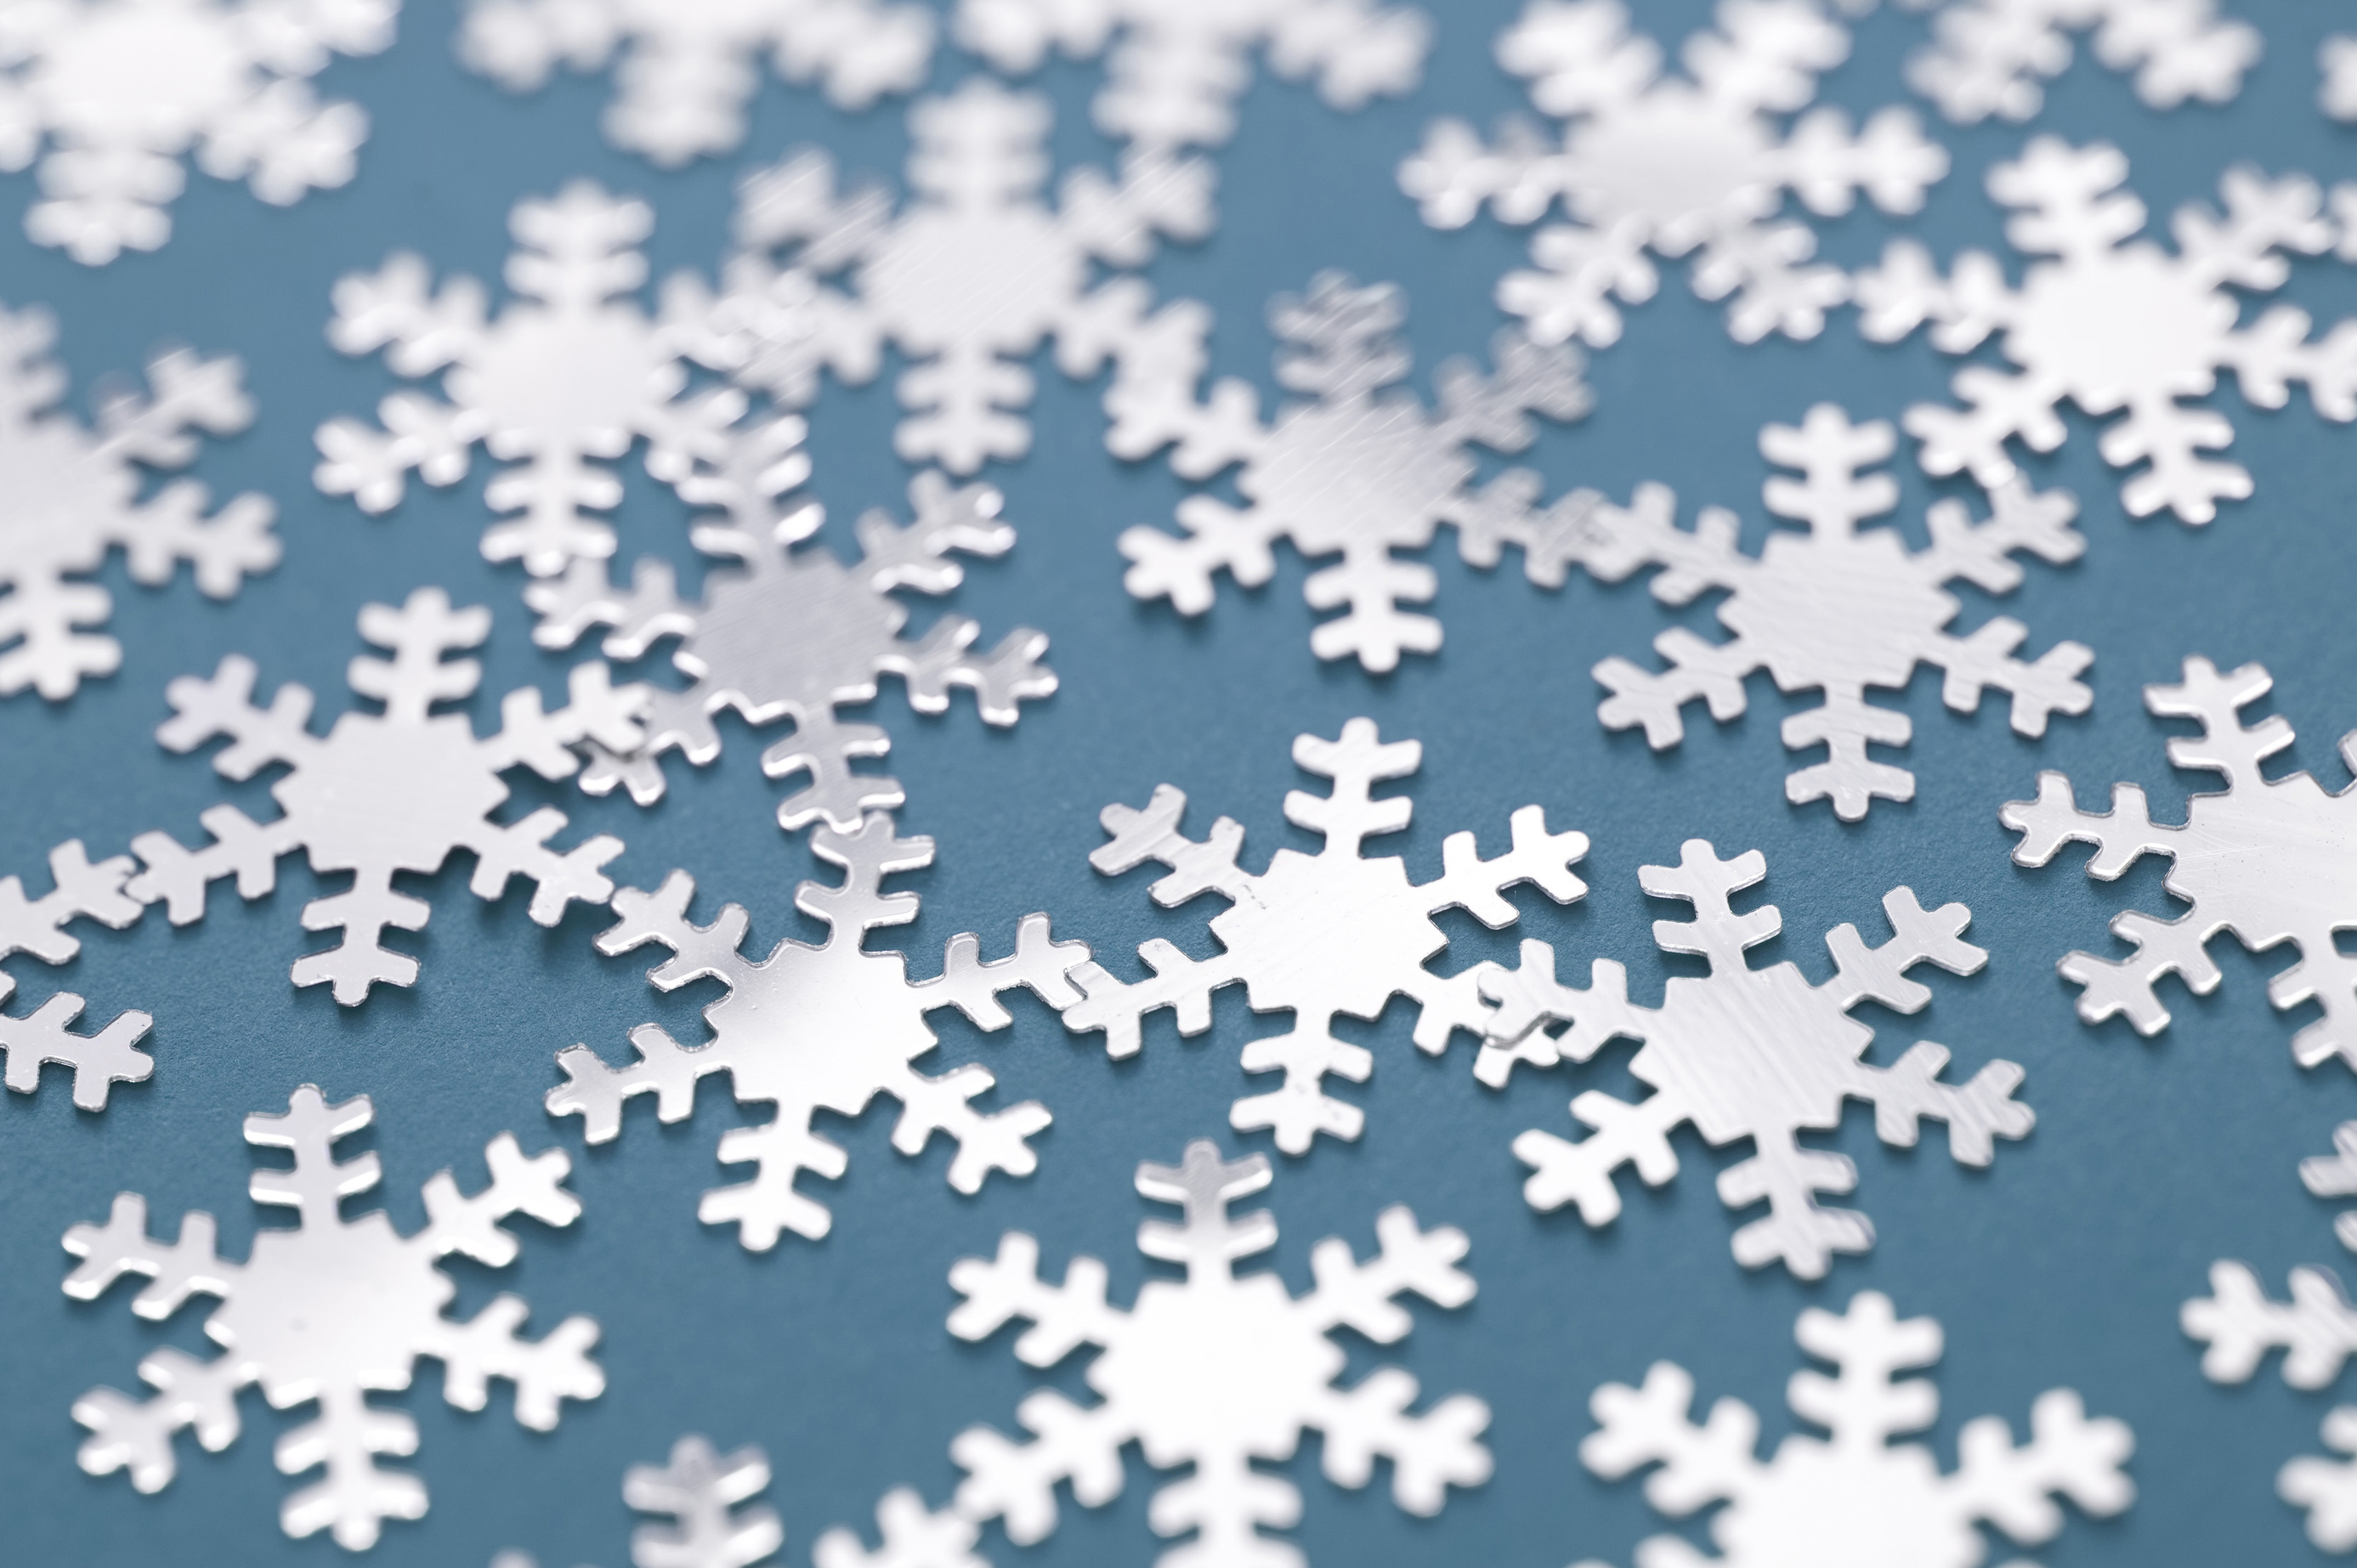 Close up Snowflakes Pattern on Blue Gray Background for Wallpaper Designs.